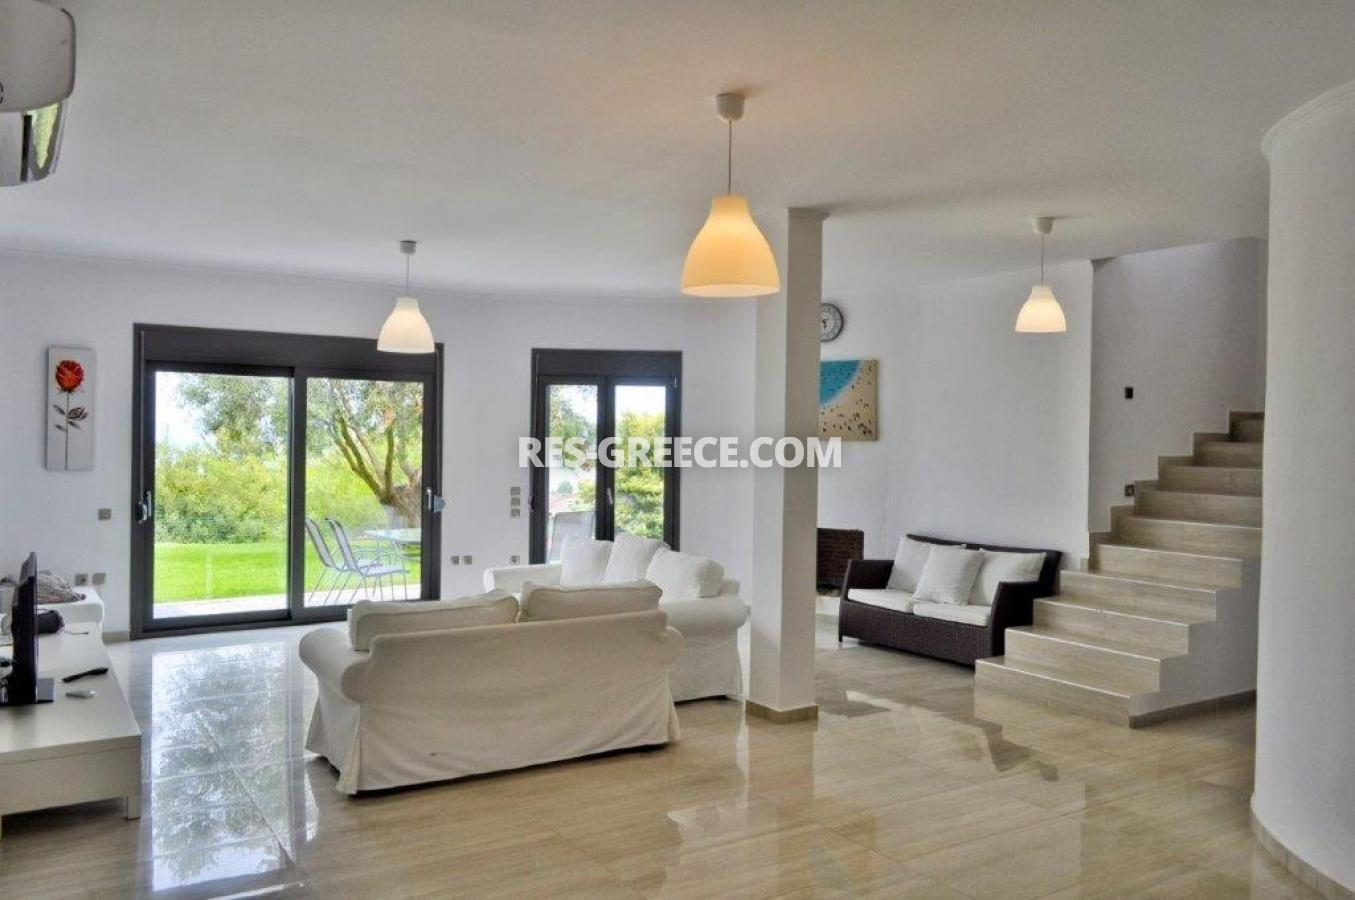 Delfini, Halkidiki-Kassandra, Greece - complex of 2 villas with panoramic view for sale - Photo 6